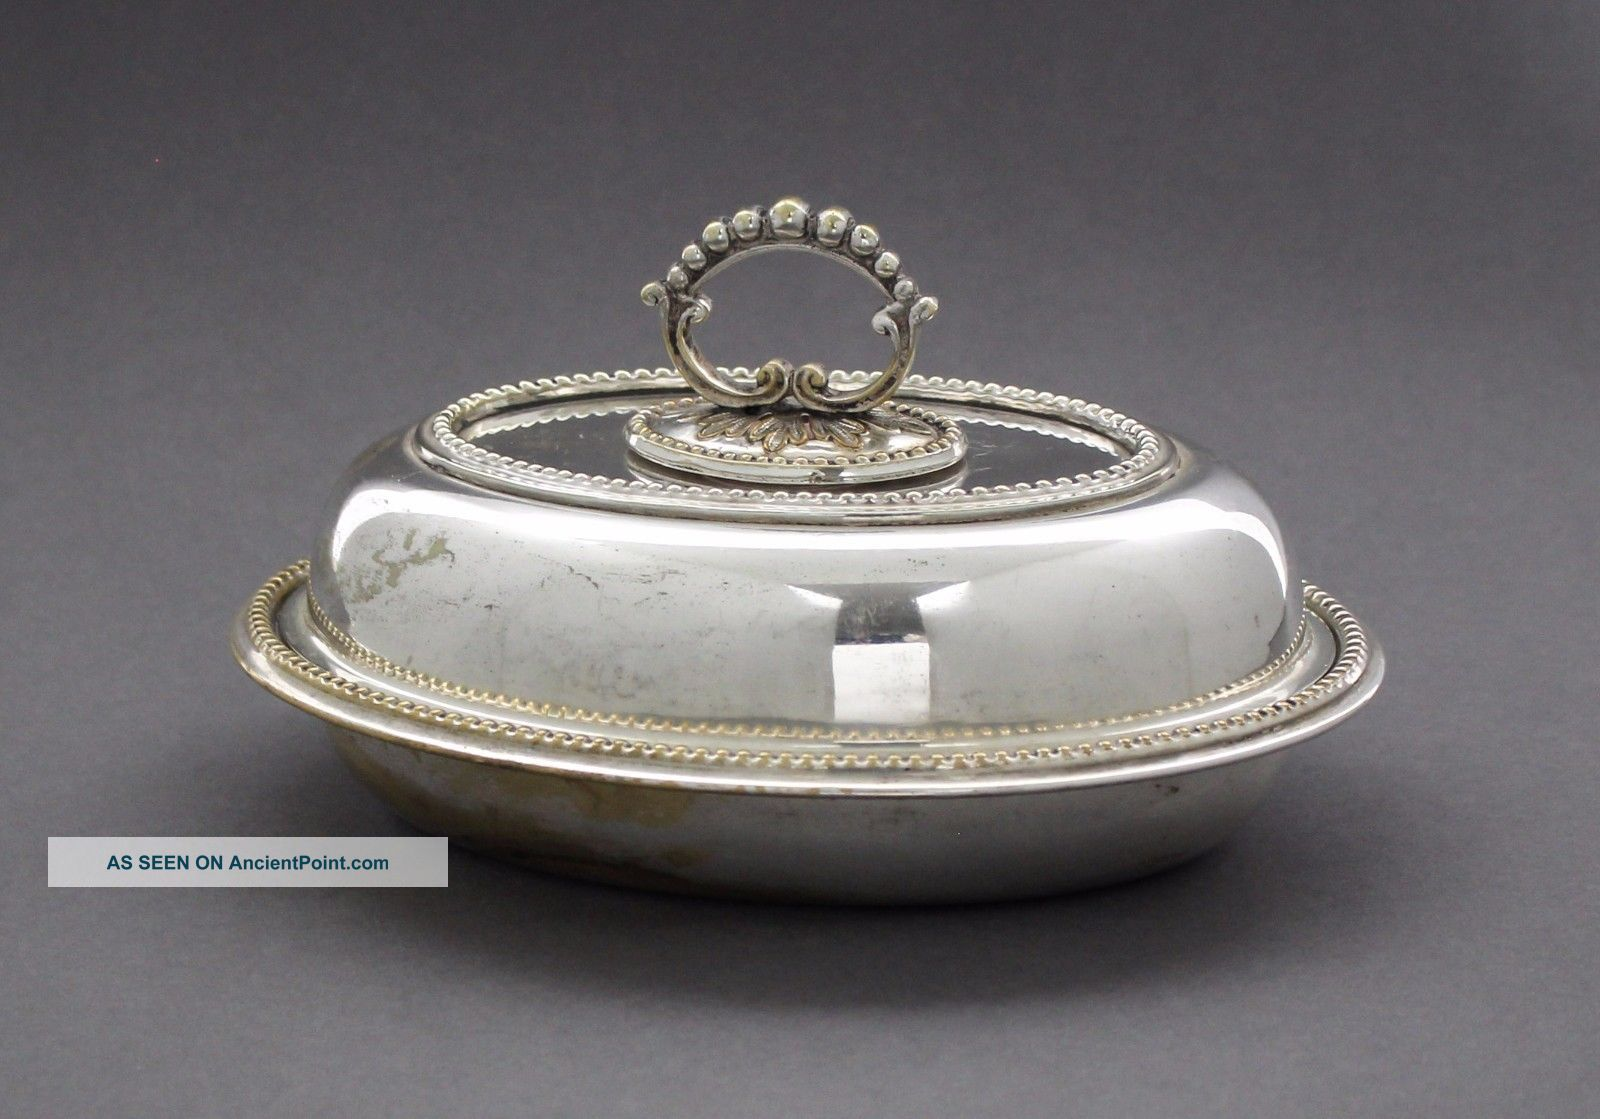 Antique Silver Plate Small Oval Entrée Dish Vegetable Lidded Tureen Beaded Dishes & Coasters photo